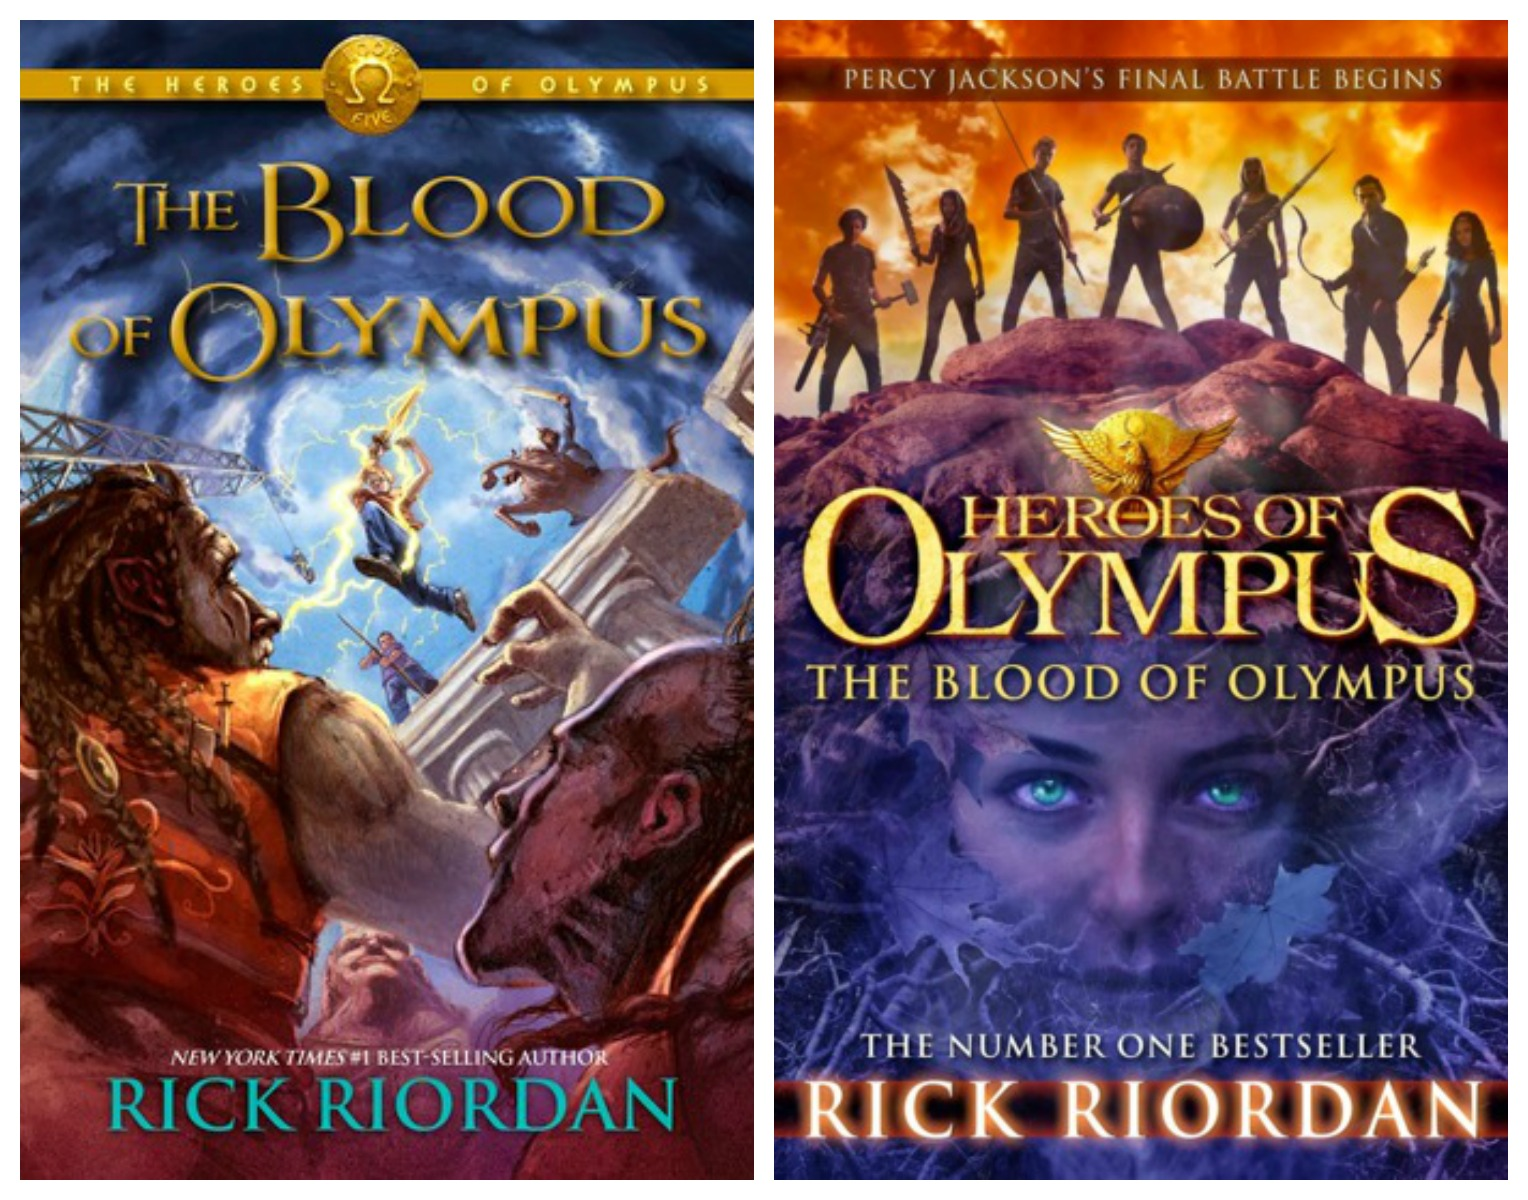 http://www.wook.pt/ficha/the-blood-of-olympus/a/id/15761042/?a_aid=526afaca39d15